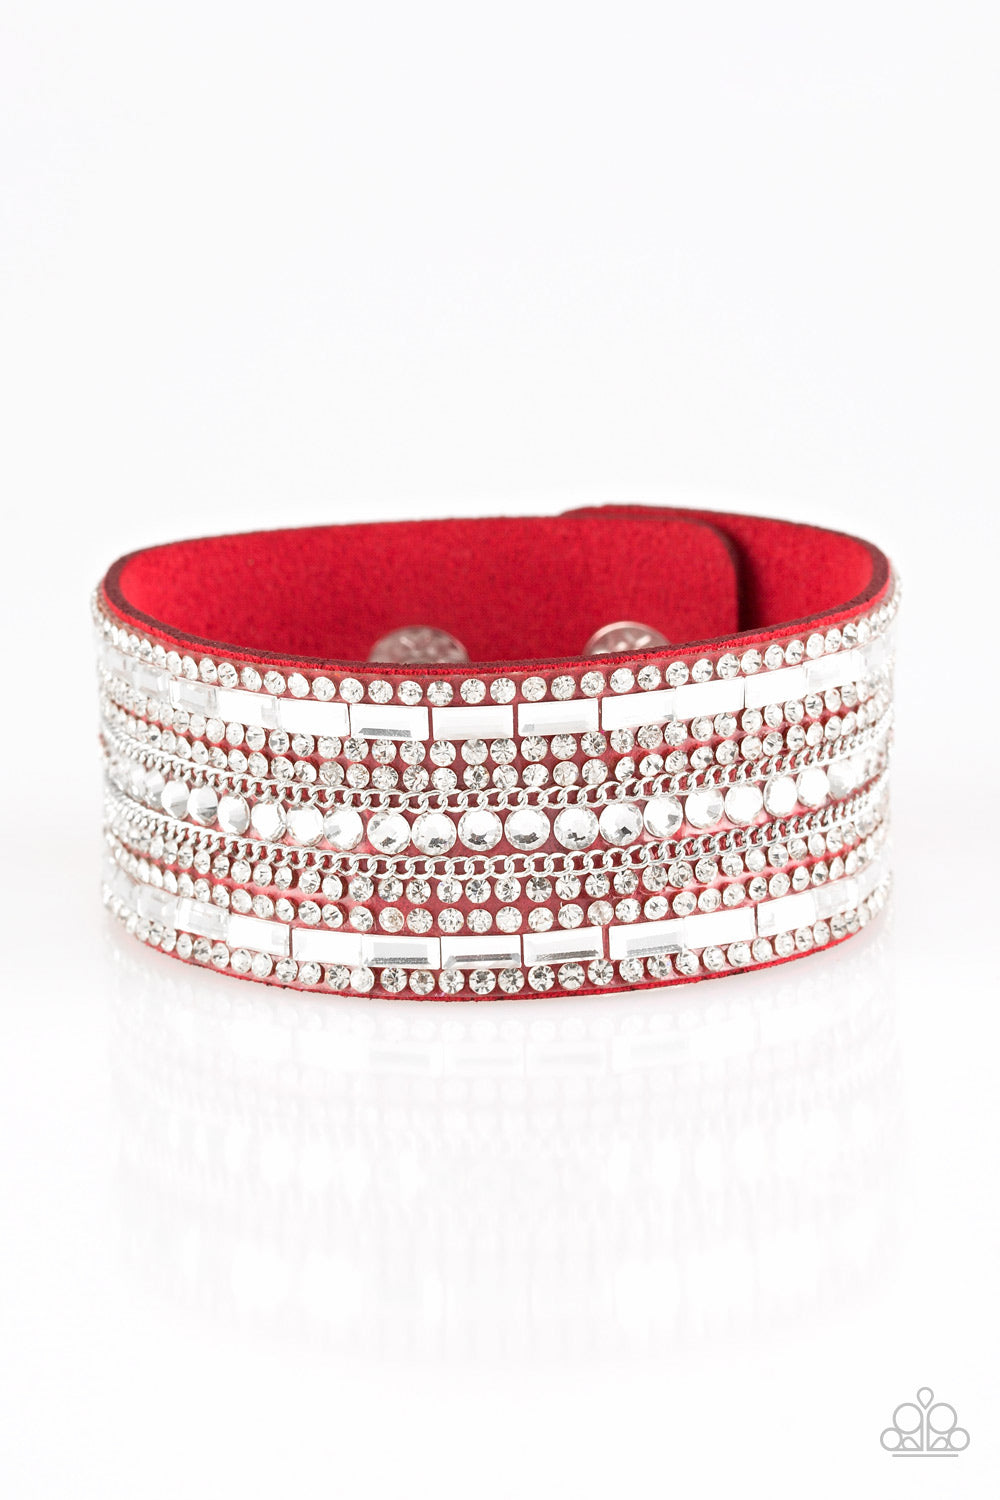 Paparazzi Accessories - Rebel Radiance - Red Bracelet - JMJ Jewelry Collection